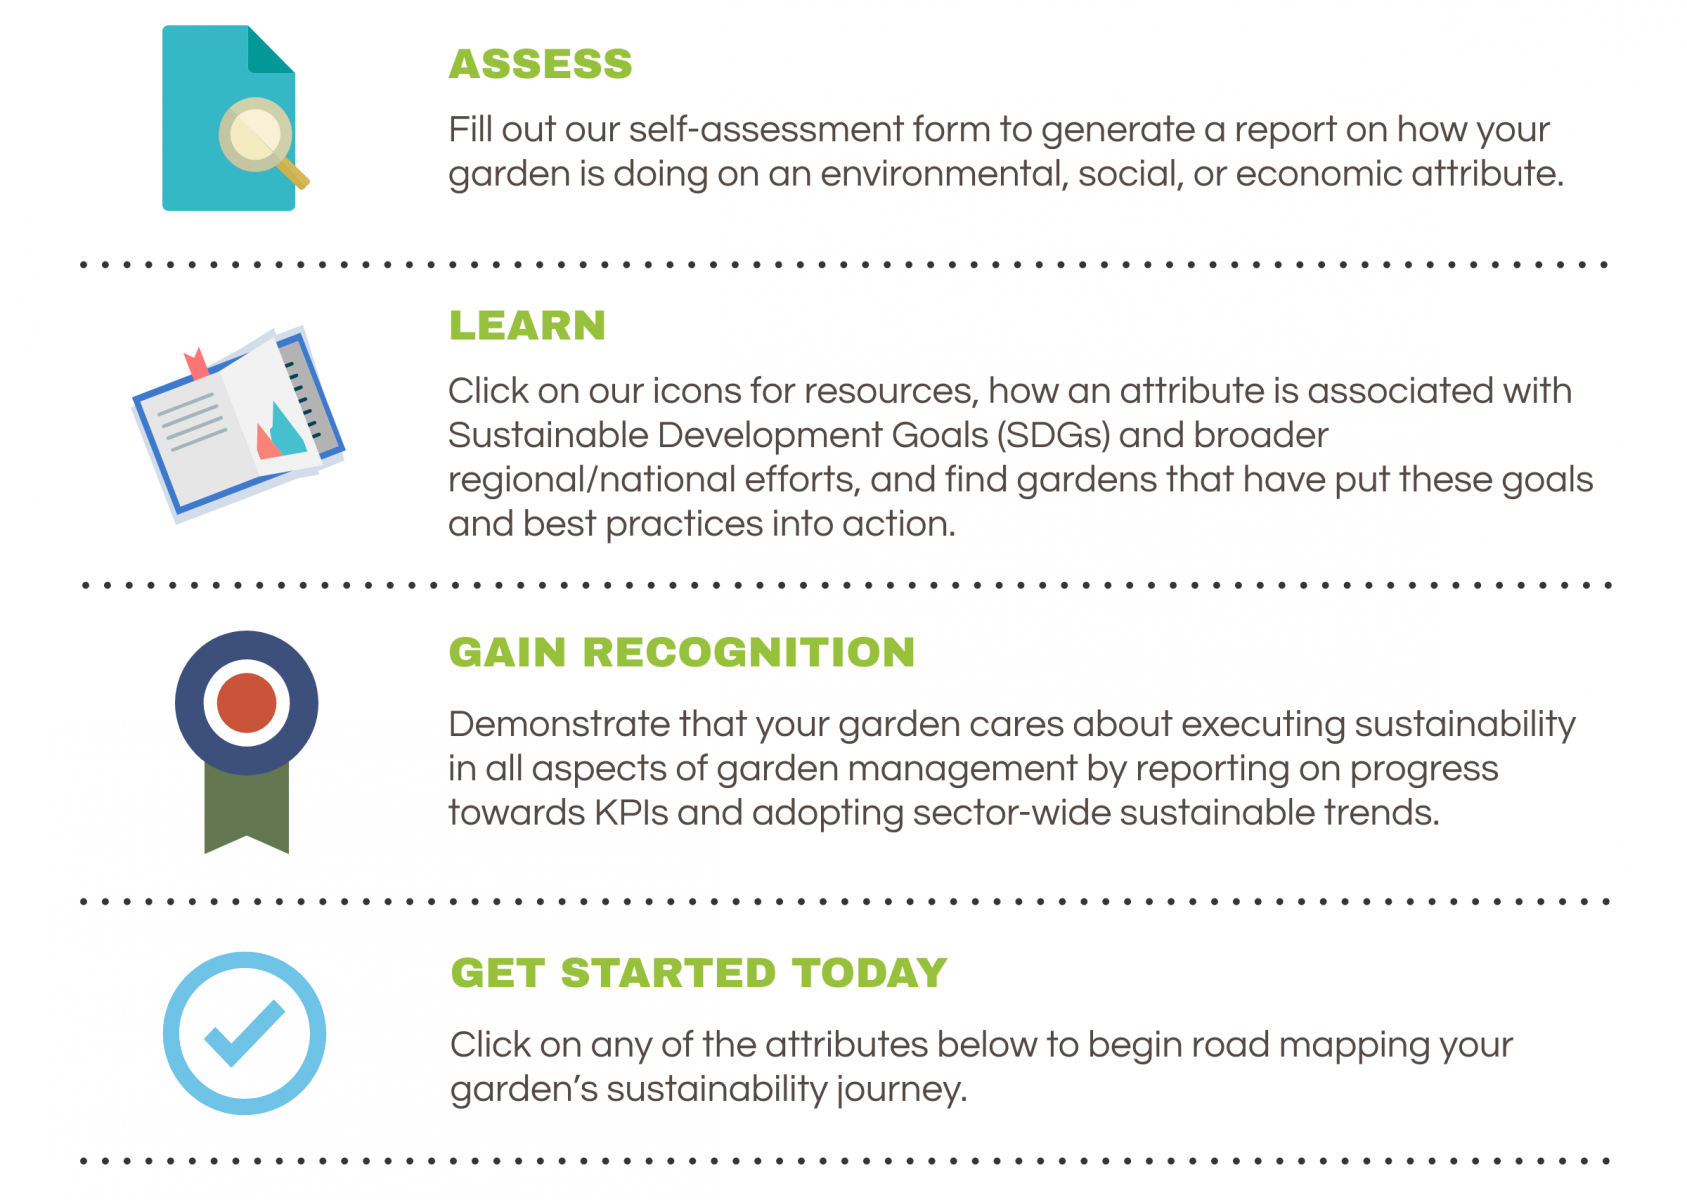 ASSESS-fill out our self-assessment form to generate a report on how your garden is doing on an environmental, social, or economic attribute.   LEARN-click on our icons for resources, how an attribute is associated with Sustainable Development Goals (SDGs) and broader regional/national efforts, and find gardens that have put these goals and best practices into action.  GAIN RECOGNITION-demonstrate that your garden cares about executing sustainability in all aspects of garden management by reporting on progress towards KPIs and adopting sector-wide sustainable trends.  GET STARTED TODAY: Click on any of the attributes below to begin road mapping your garden's sustainability journey.